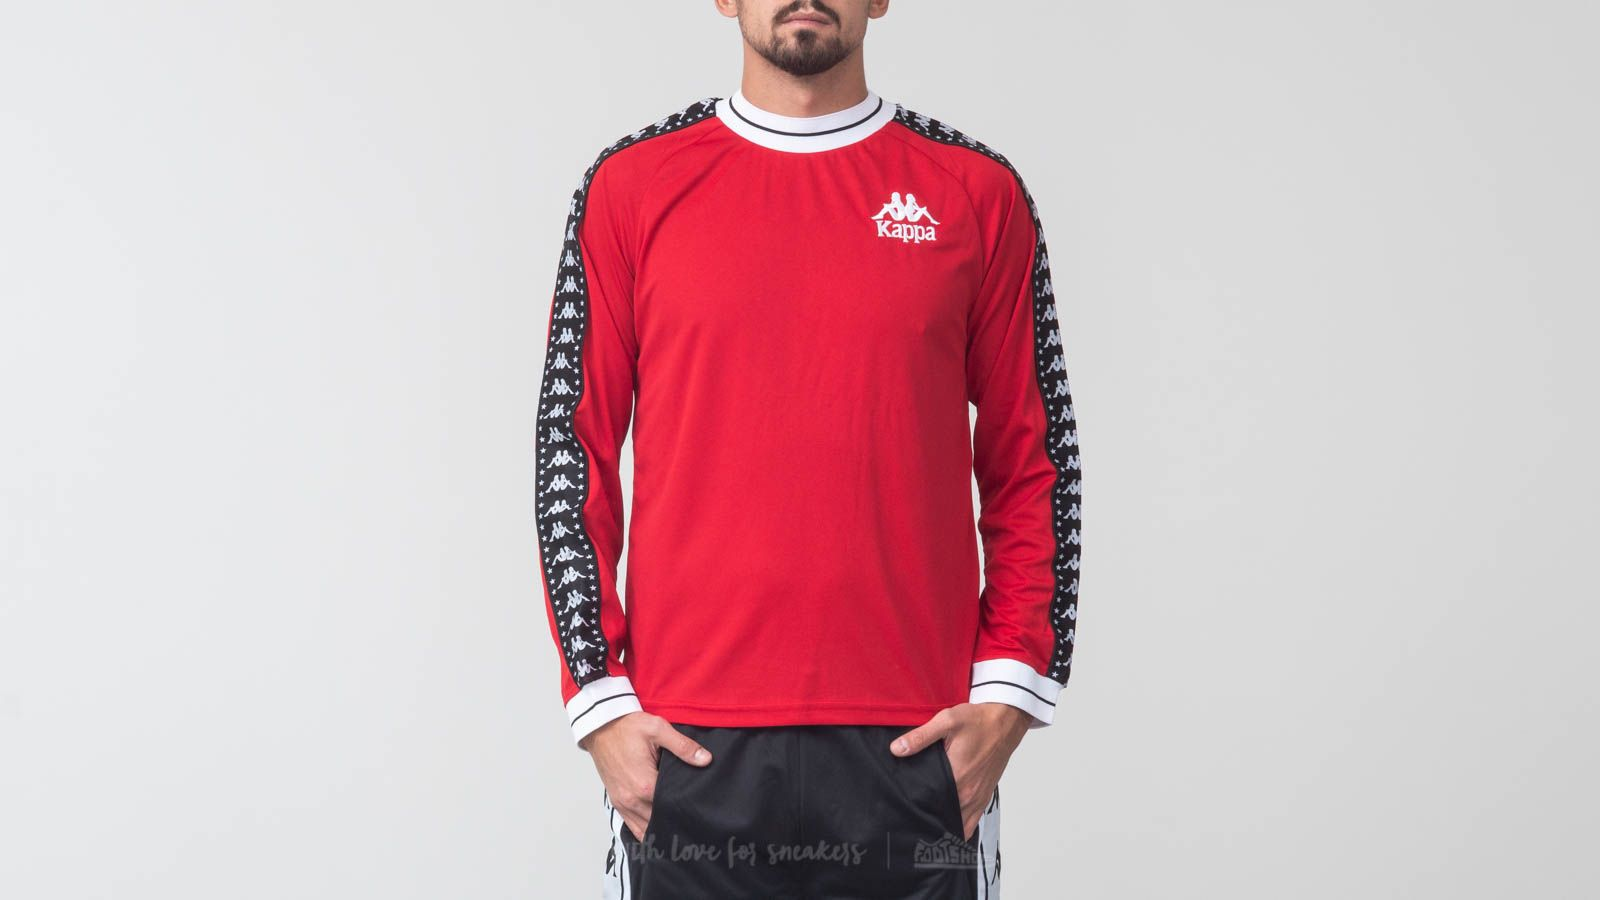 Kappa Authentic Aneat Longsleeves Tee Red/ White